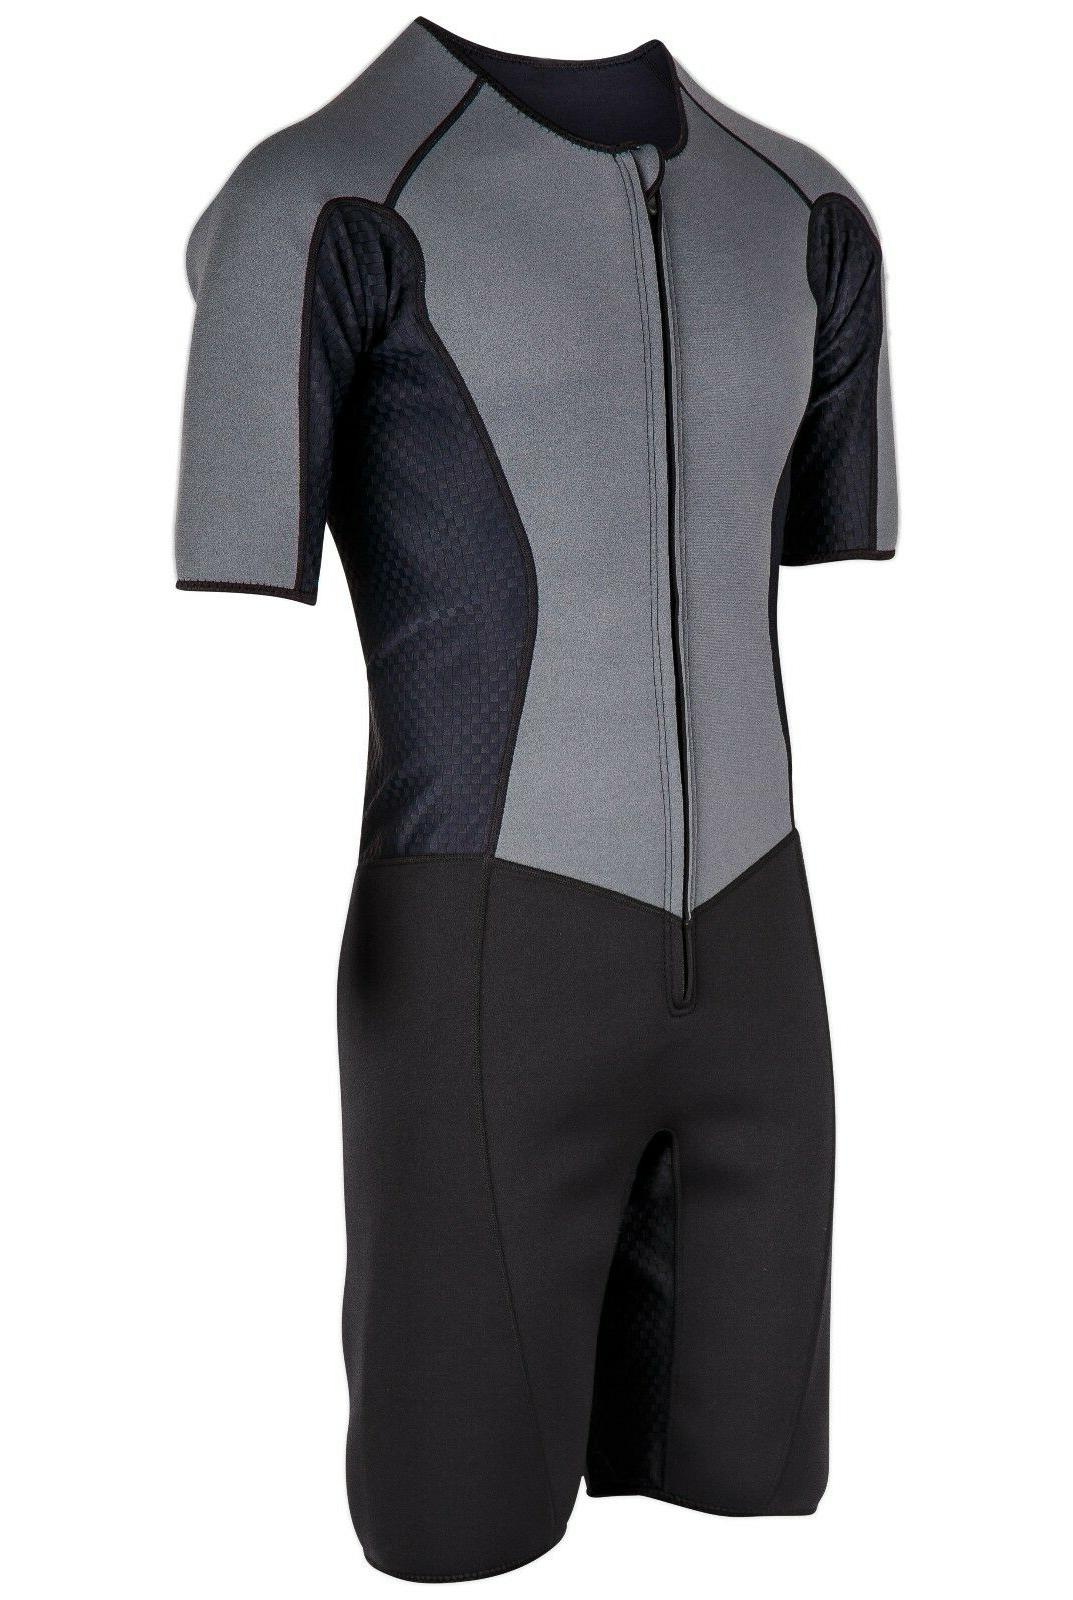 Kutting Weight Loss One-piece Sauna Suit Fitness